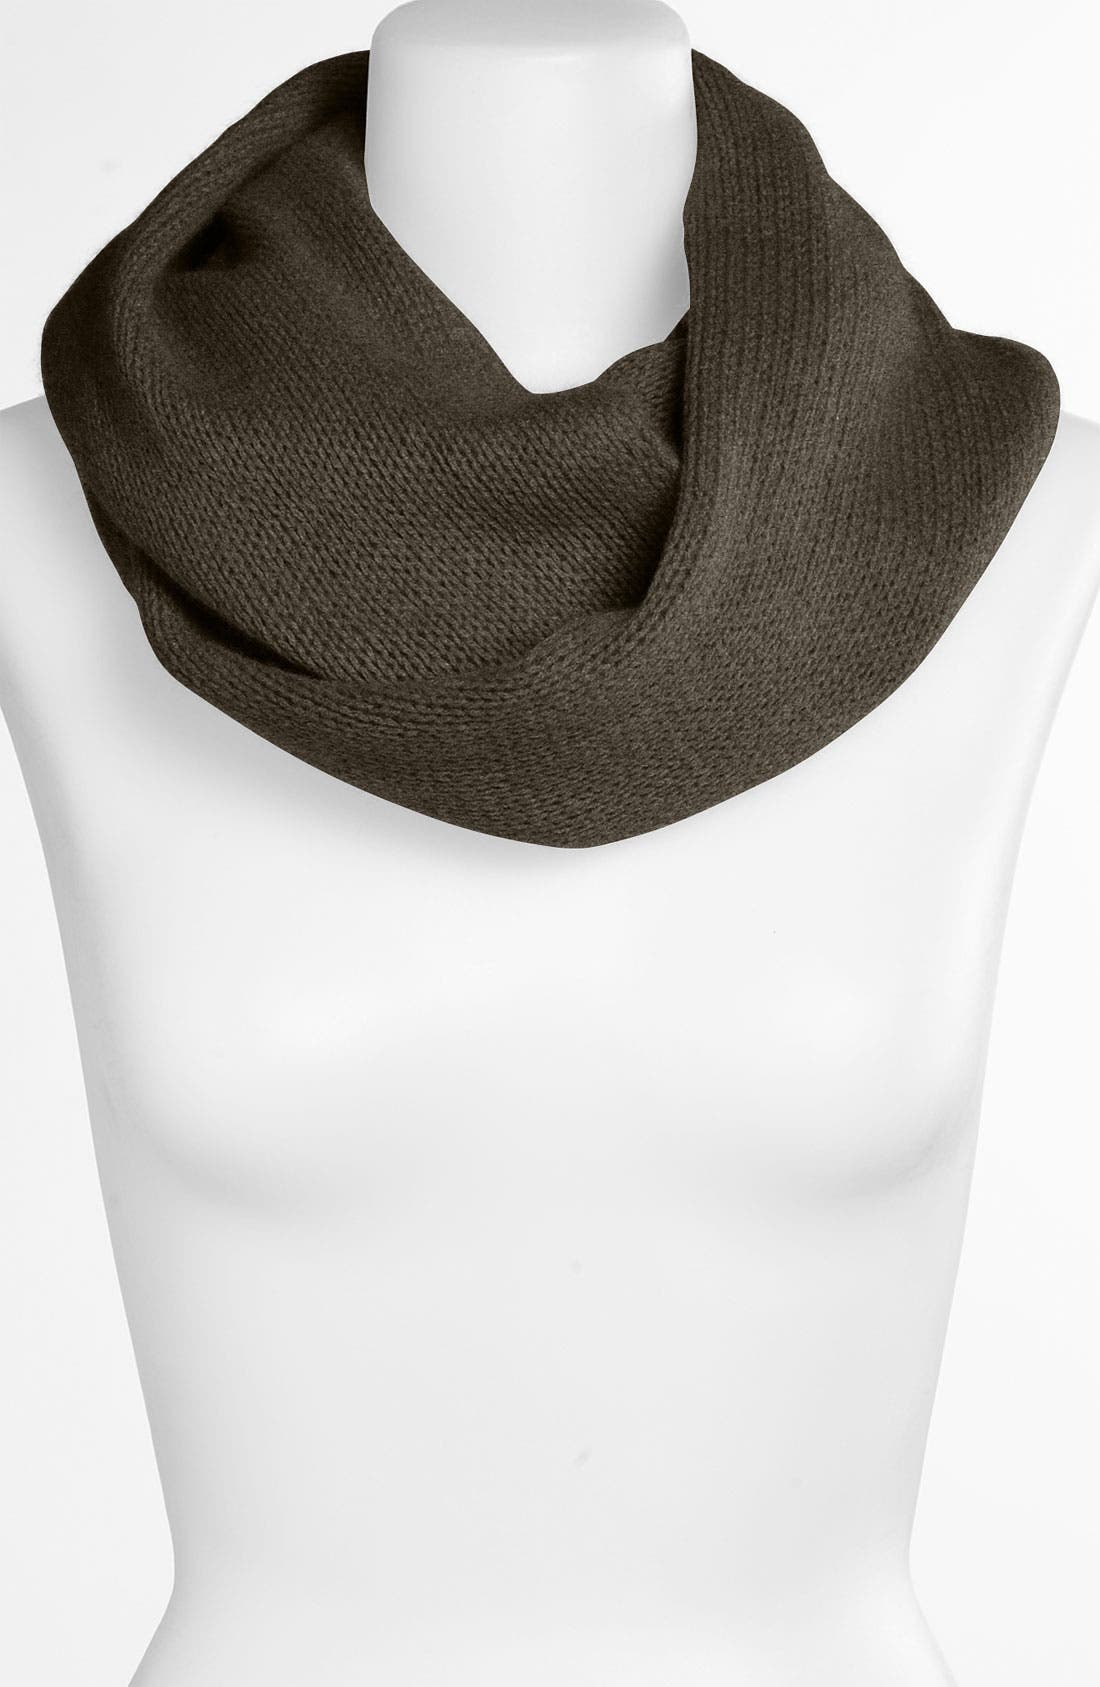 Main Image - Nordstrom Cashmere Infinity Scarf